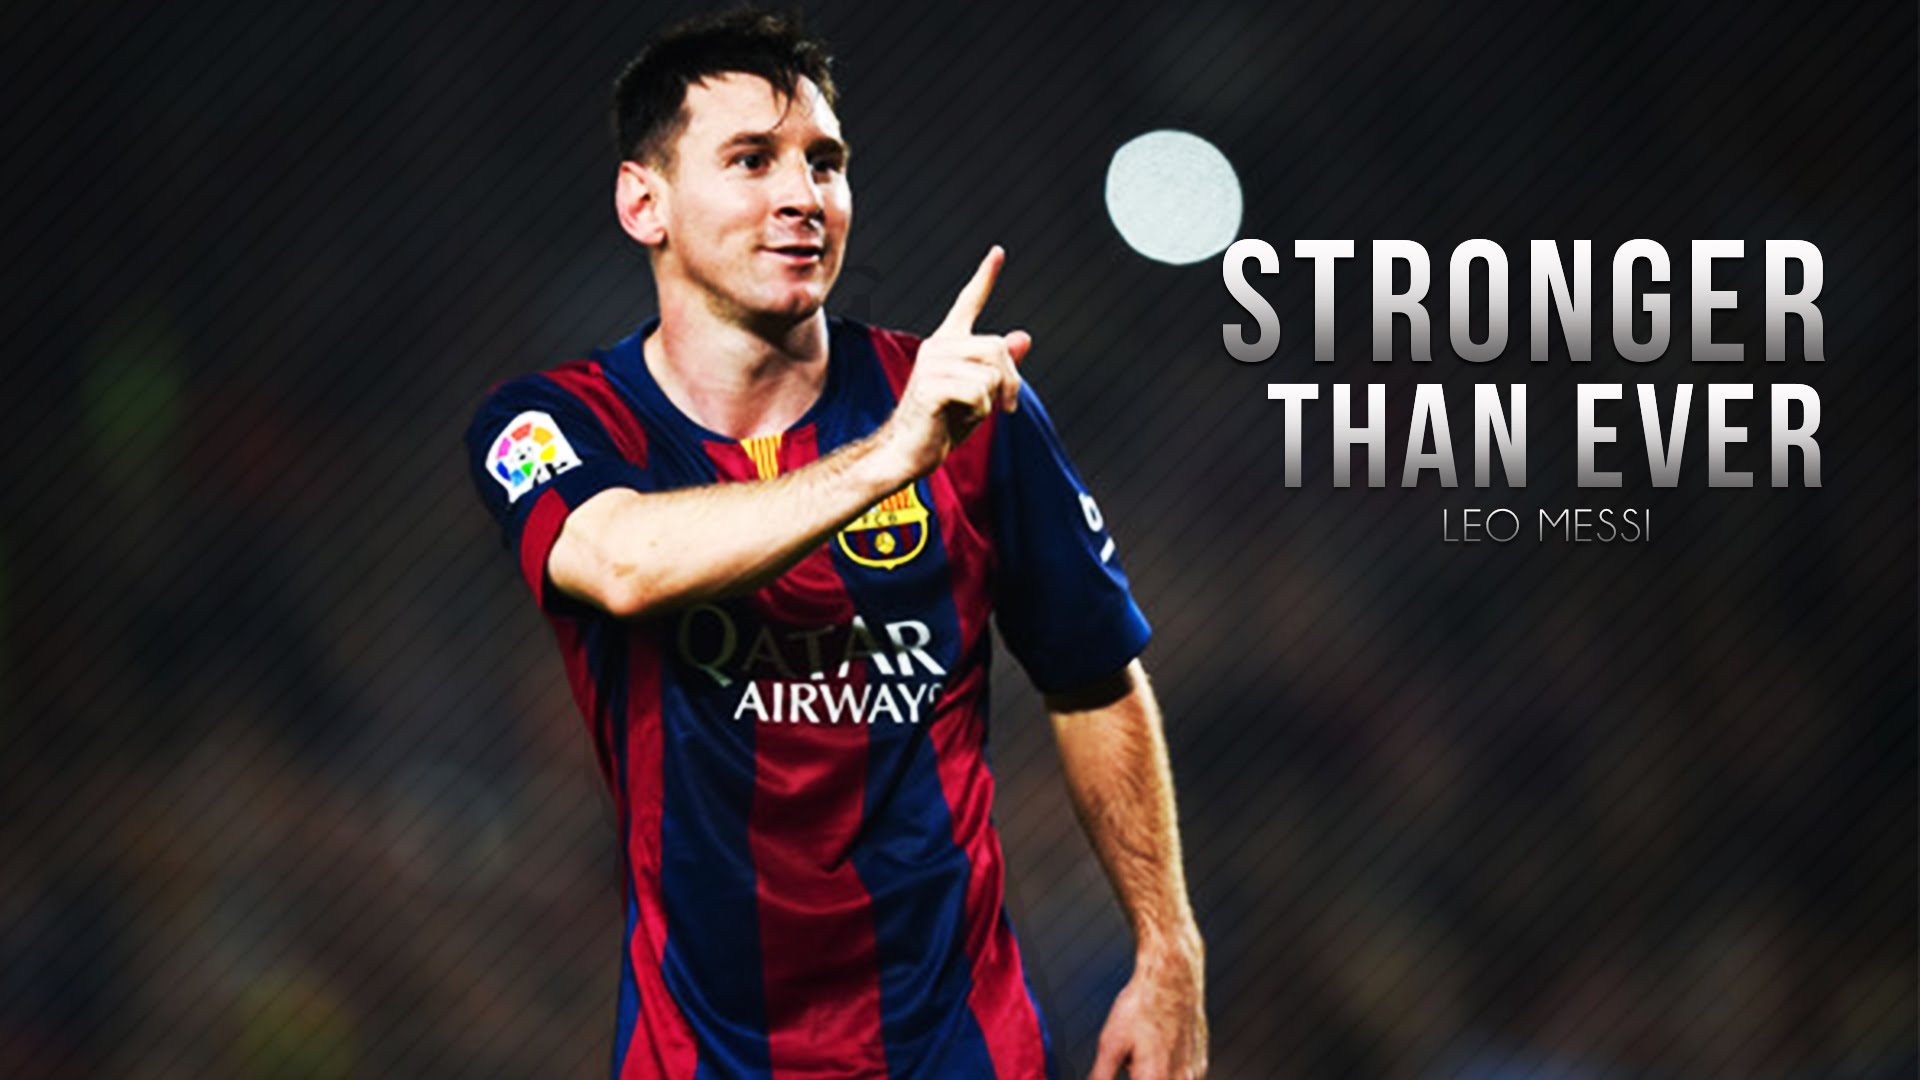 Lionel Messi Wallpapers, Pictures, Images 1920x1080